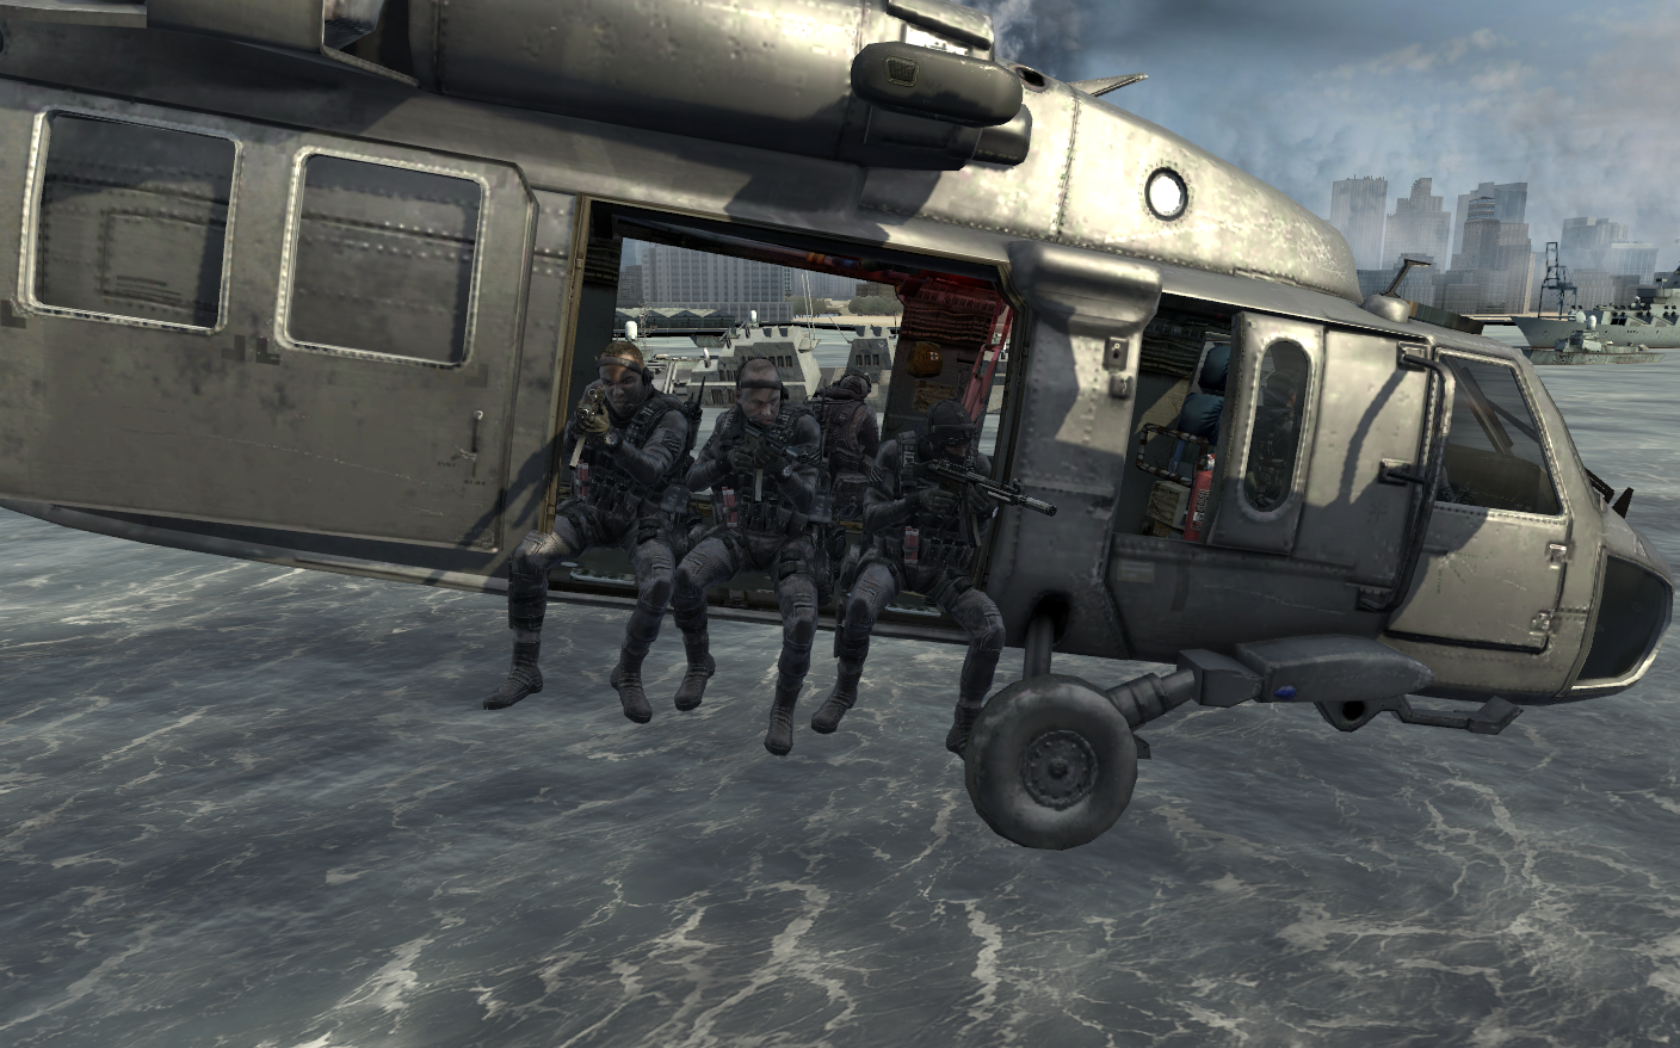 black hawk helicopter for sale with File U S  Navy Seals In Blackhawk Over Reactor Mw3 on File UH 1 Huey Drawing further Brickmania Vietnam War Kit Archive together with Dustoff medical together with Page 68 furthermore Morrigan K Class Space Fighter In Hangar 358394887.